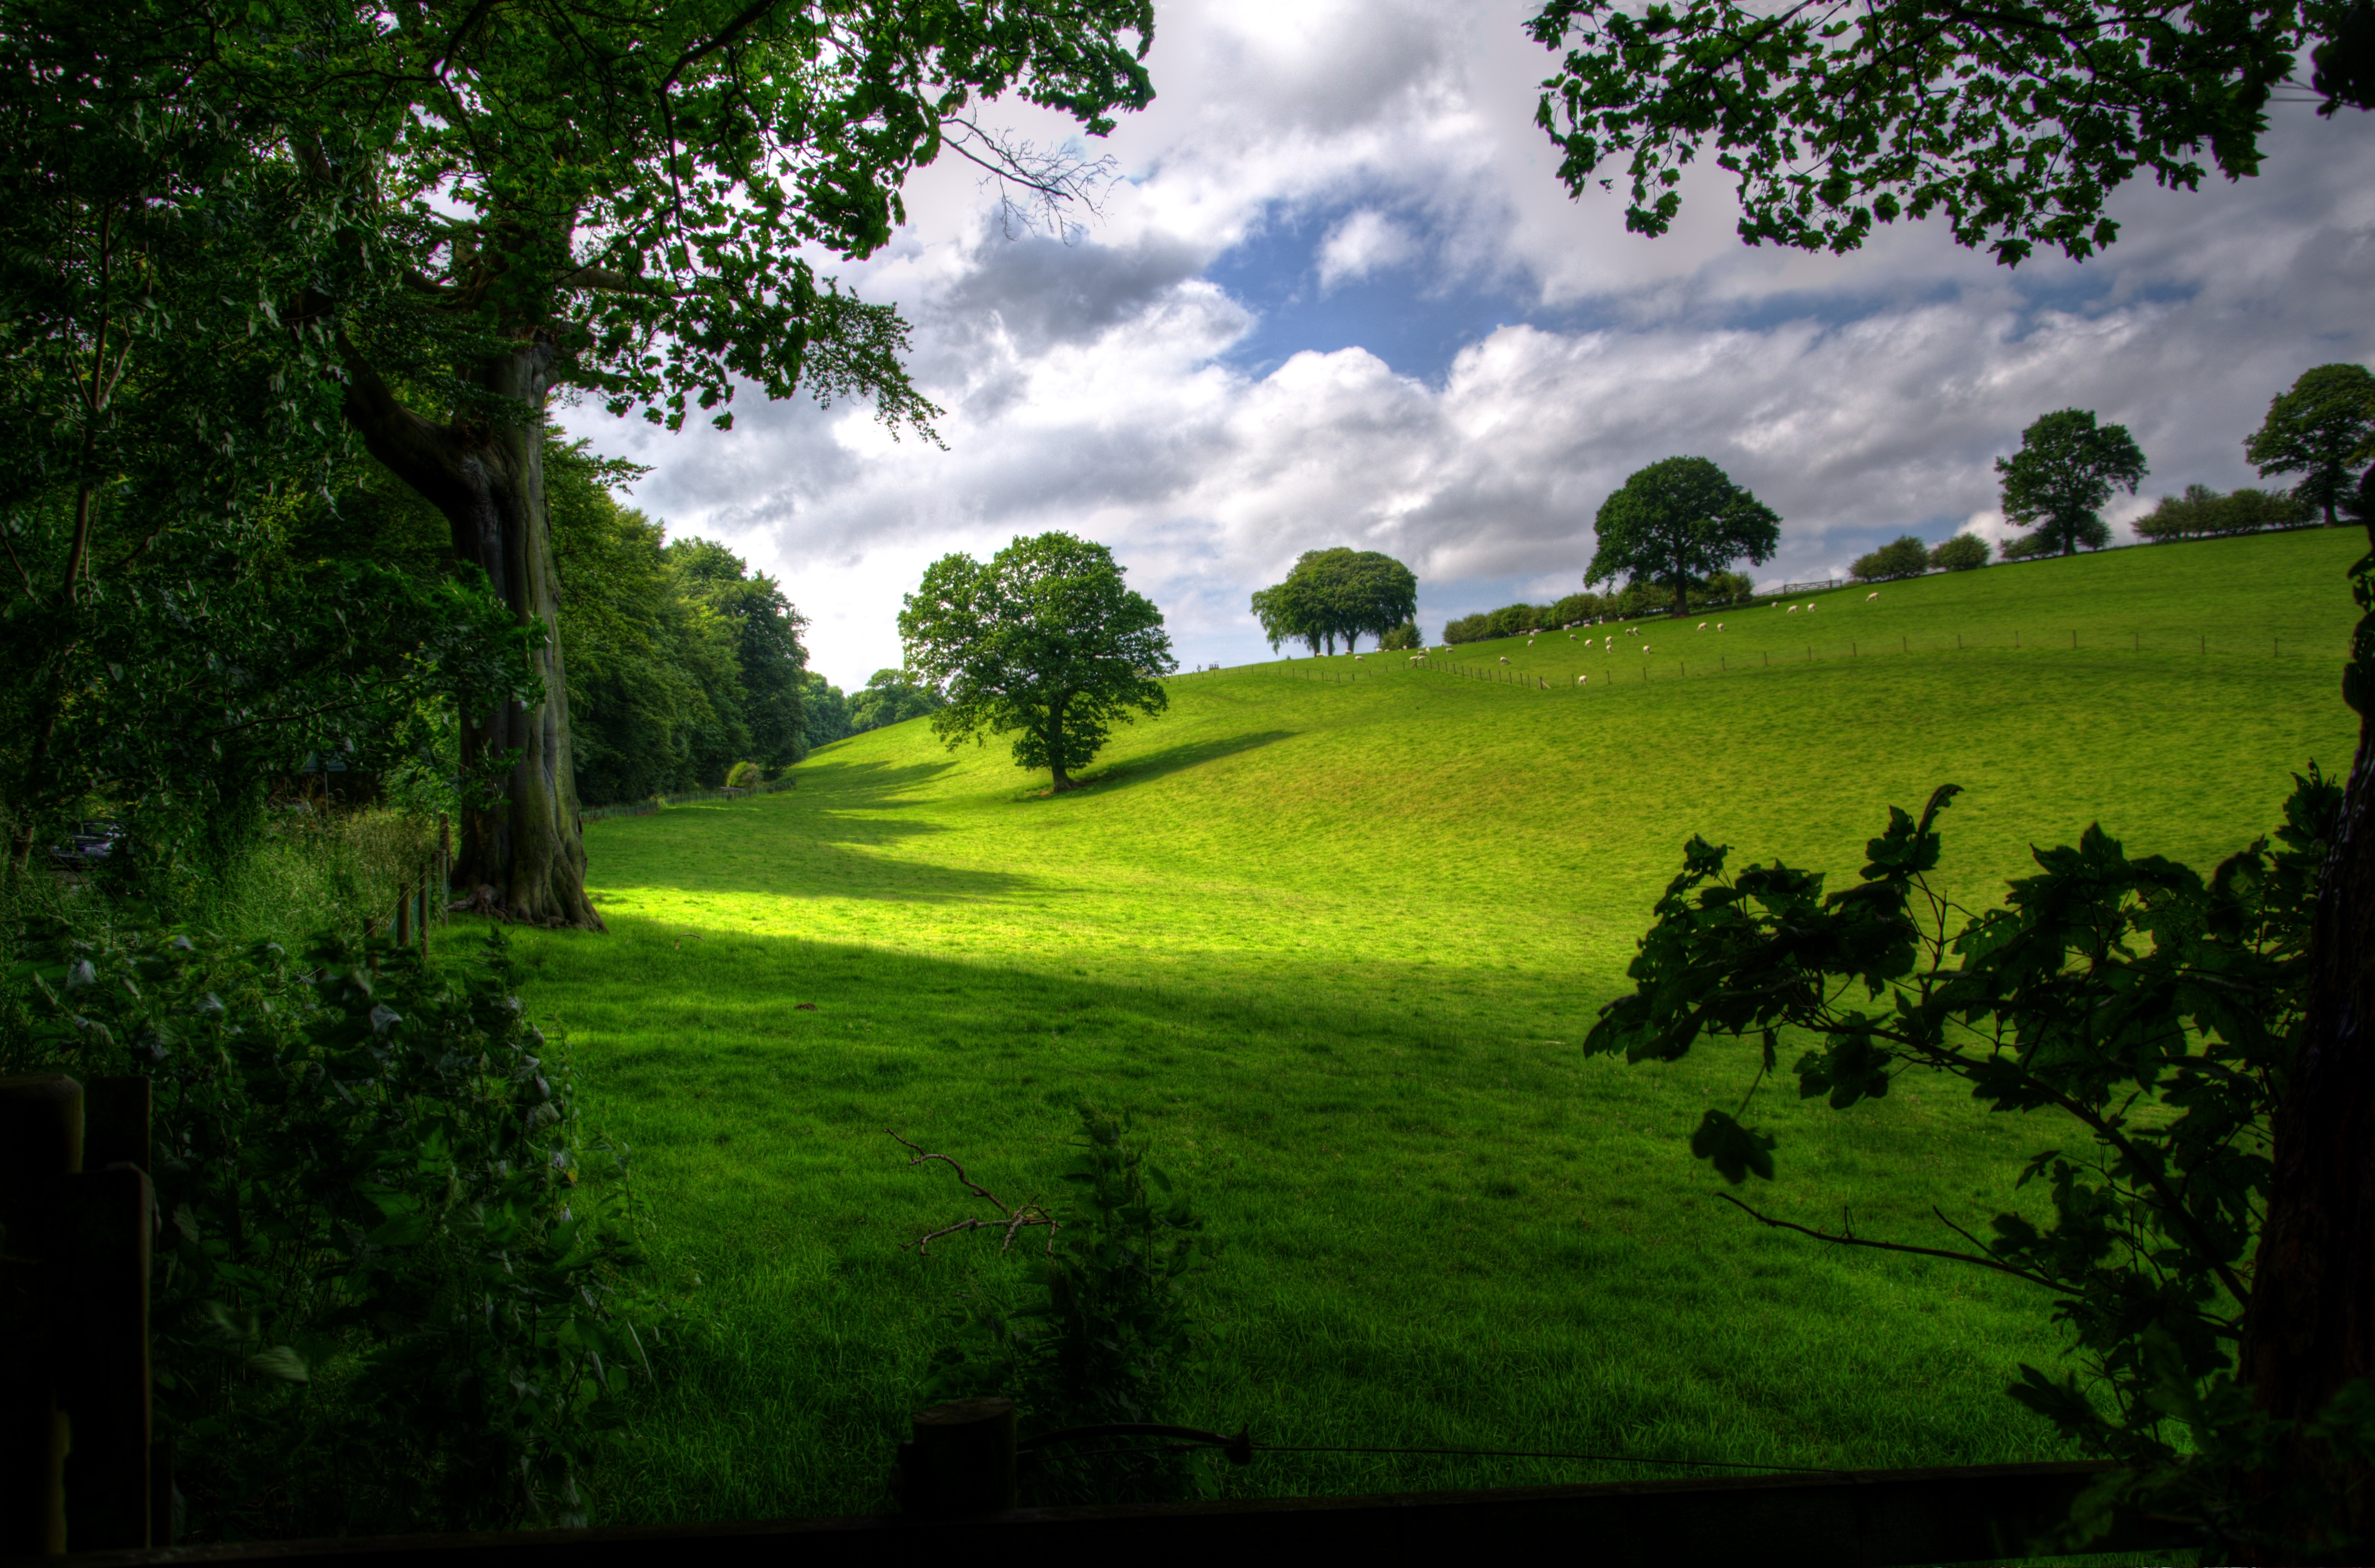 Green Hill With Tree Under White Clouds And Blue Sky